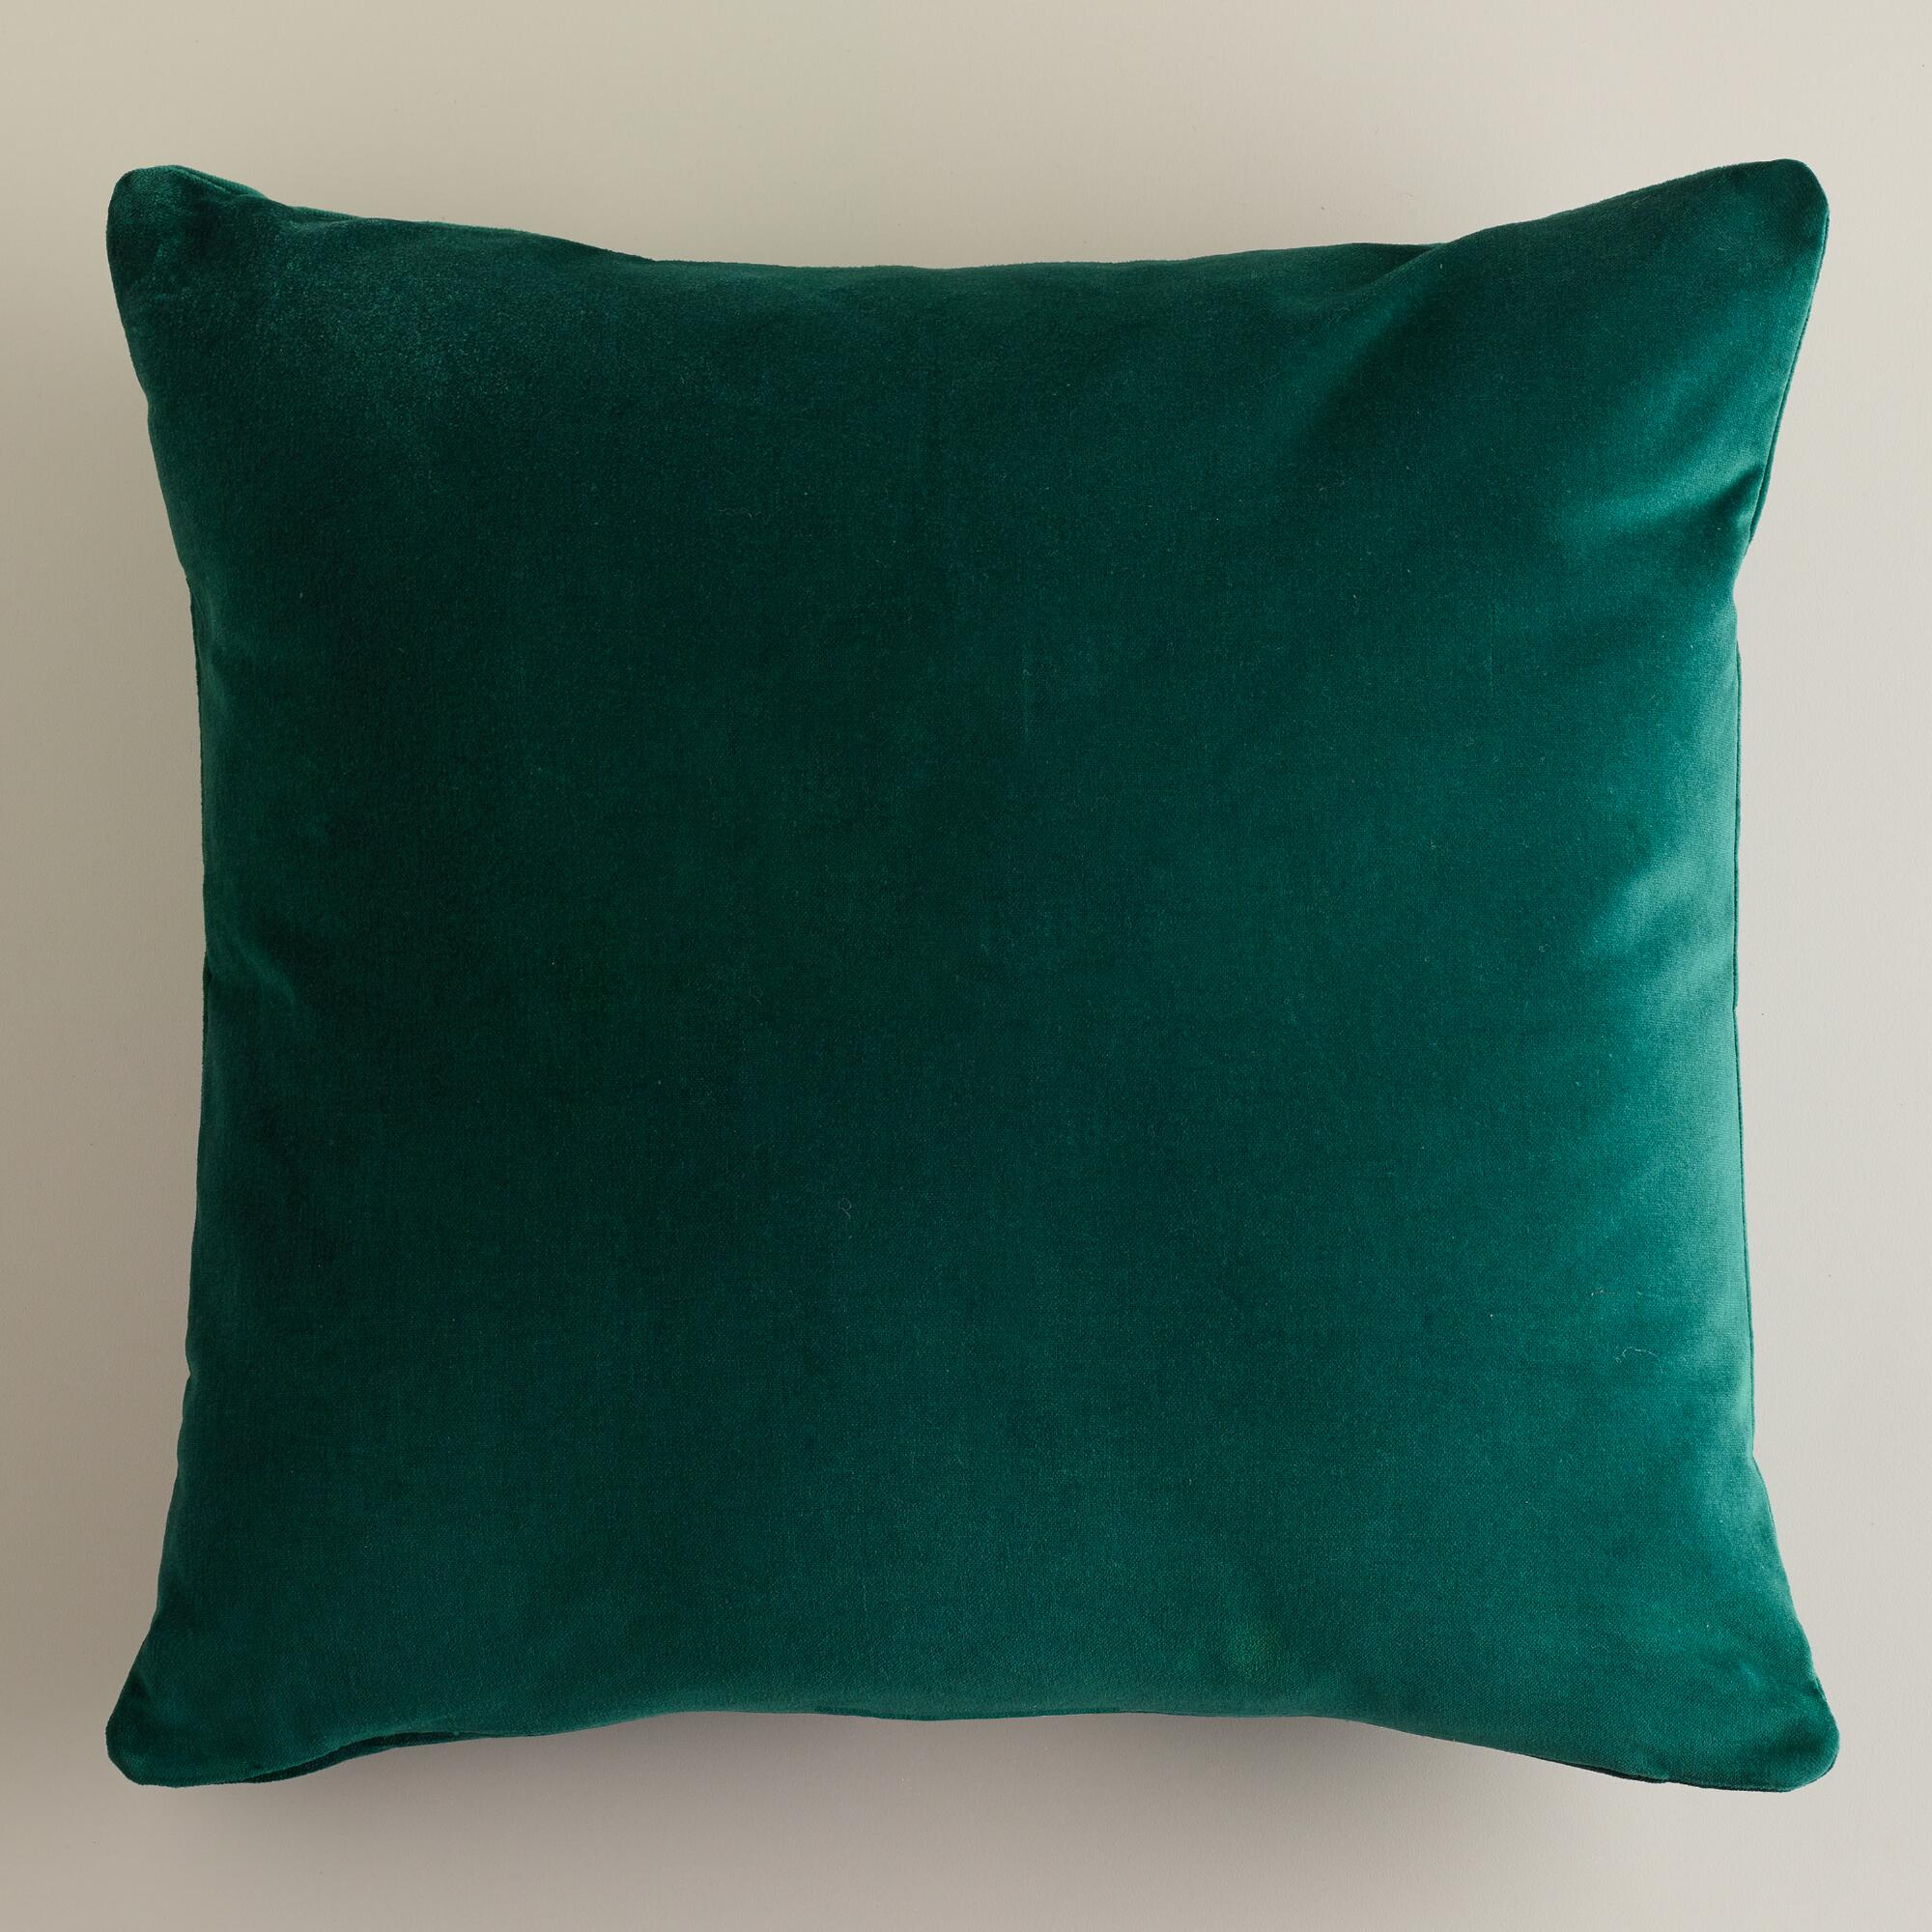 Decorative Pillows For Bed Green : Dark Green Velvet Throw Pillows World Market